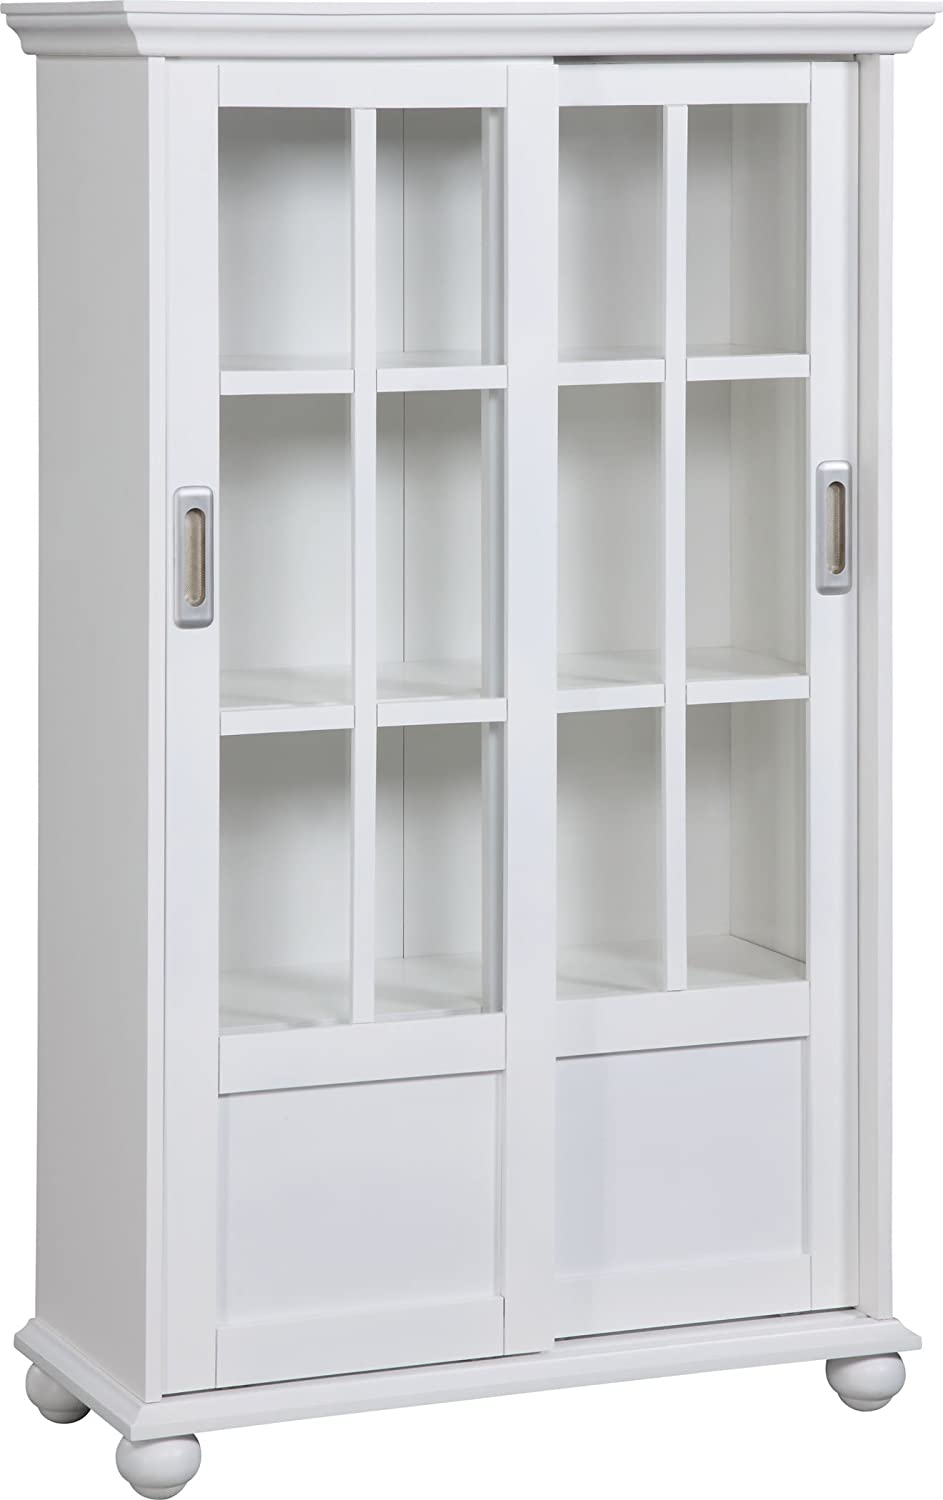 Very best Amazon.com: Altra 9448096 Bookcase with Sliding Glass Doors, White  JT18